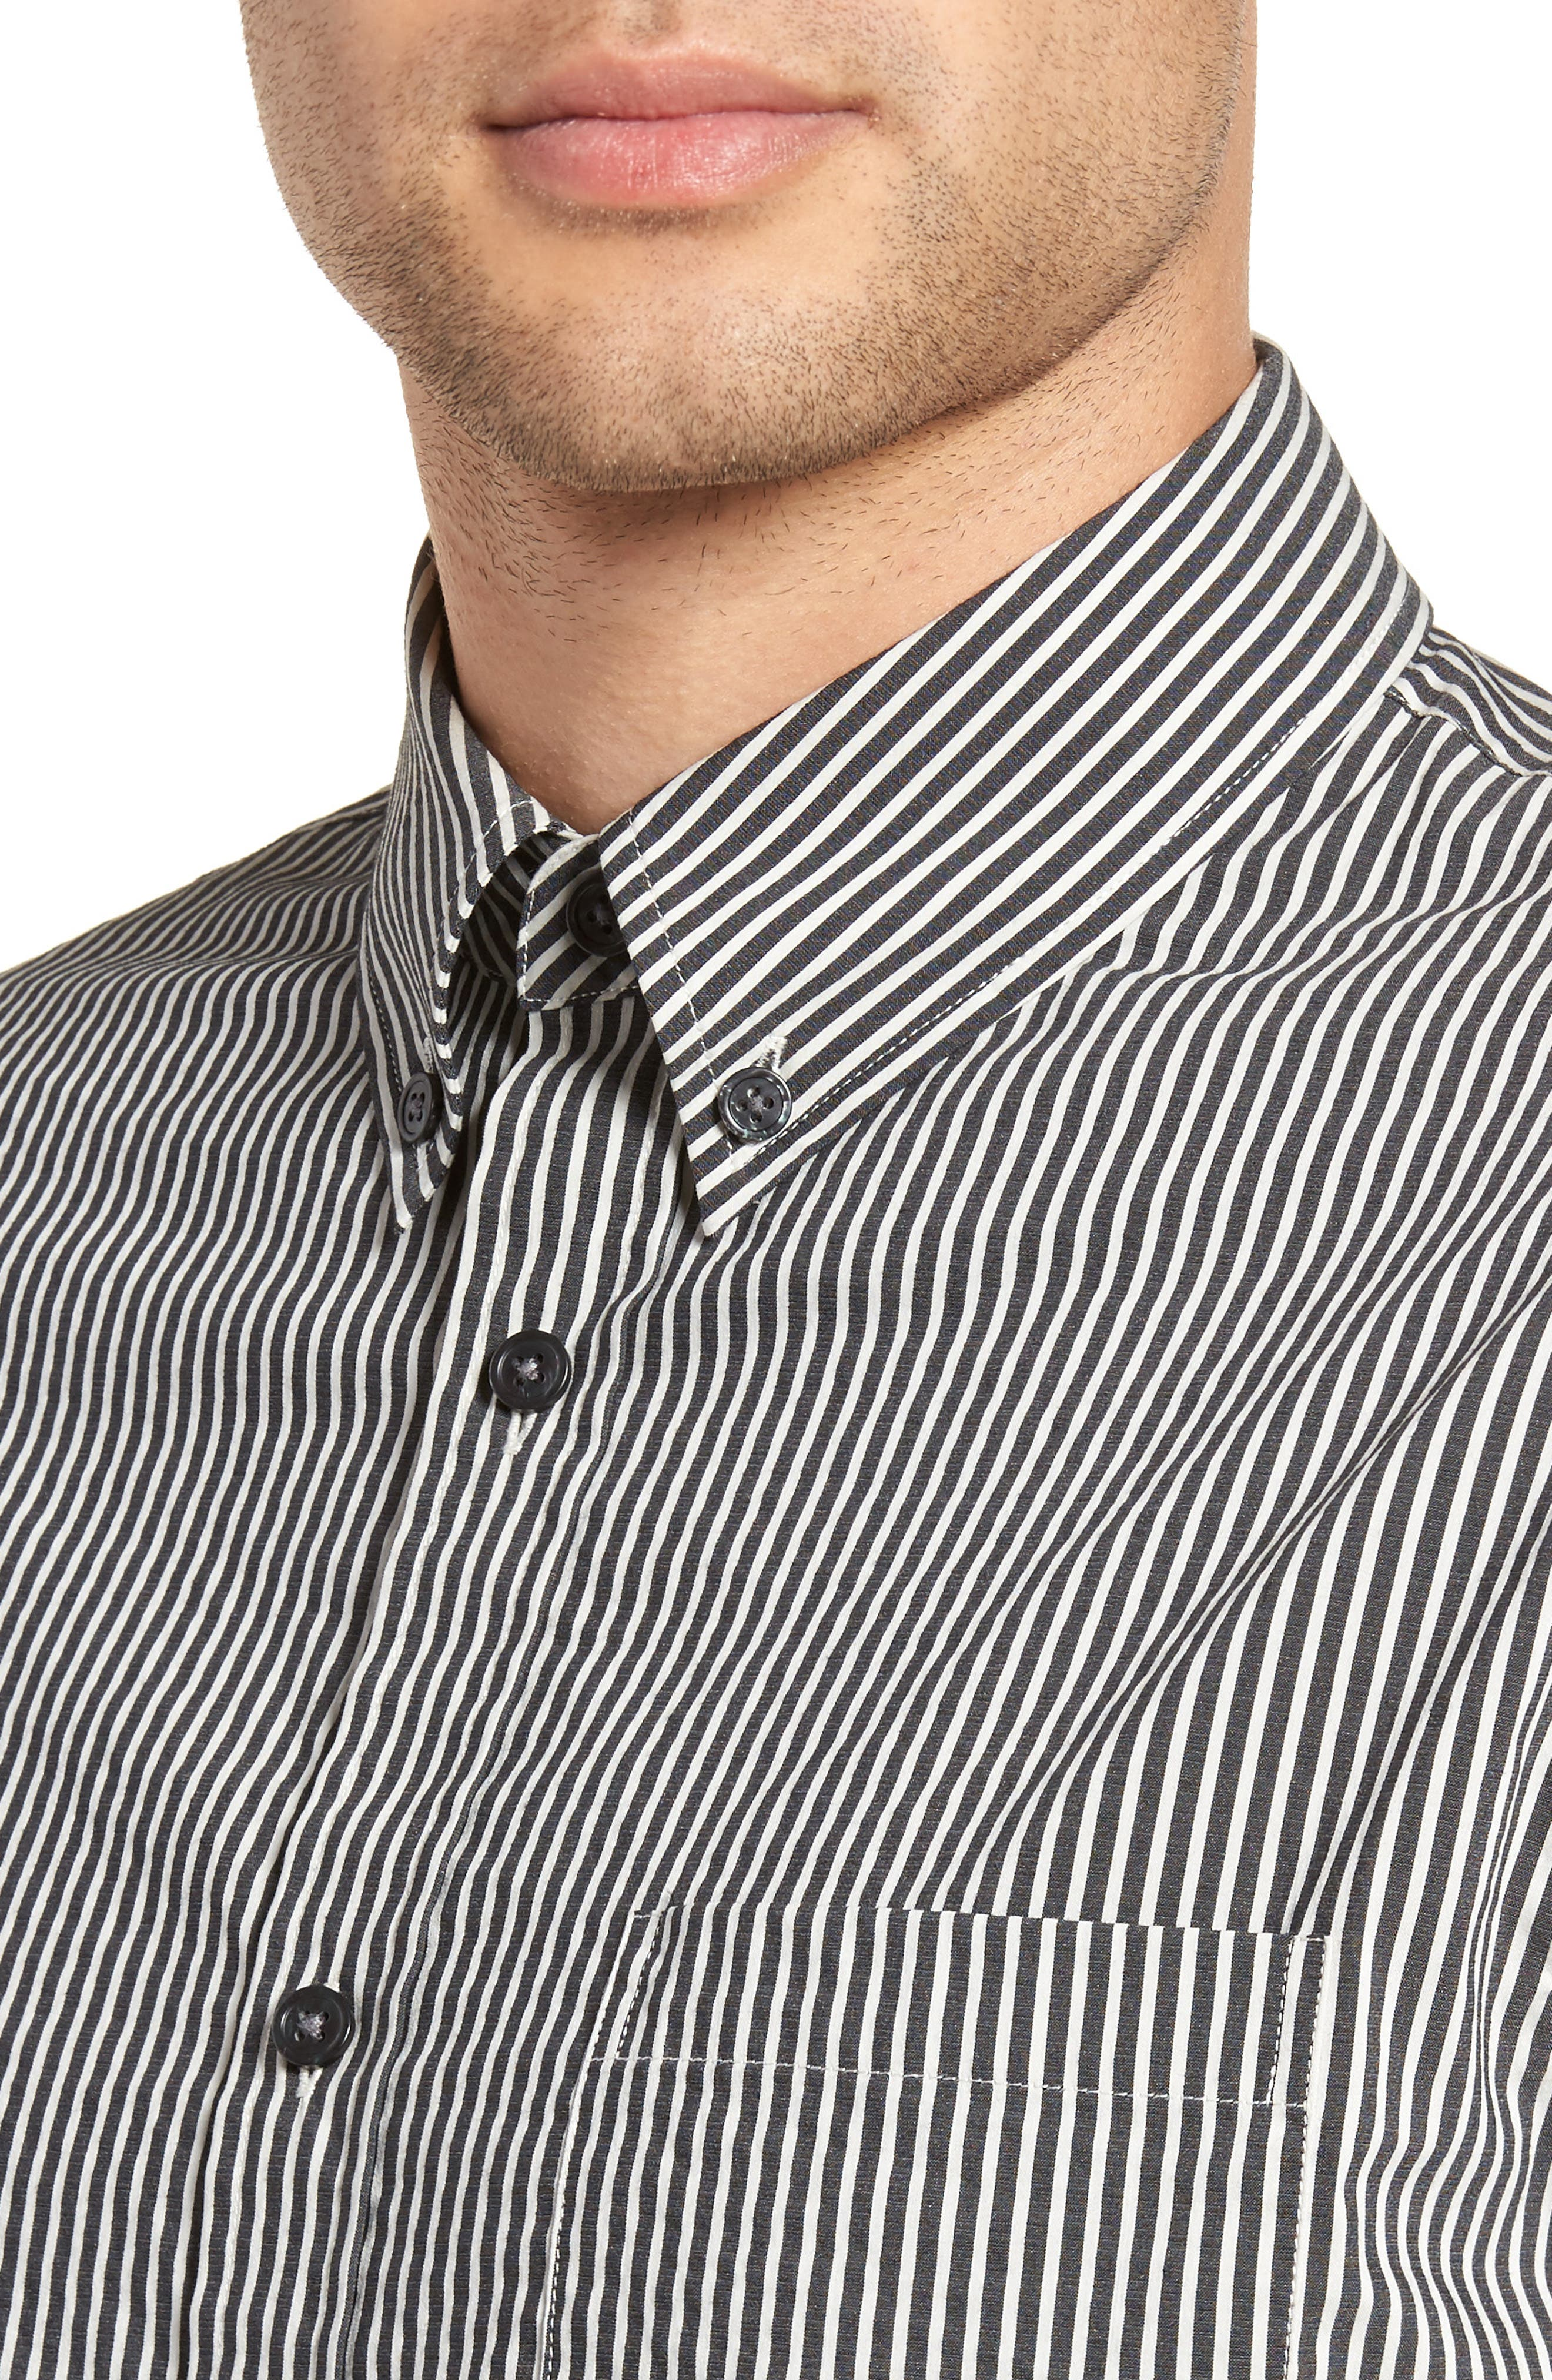 Bar Stripe Sport Shirt,                             Alternate thumbnail 4, color,                             Black/ Stormy White